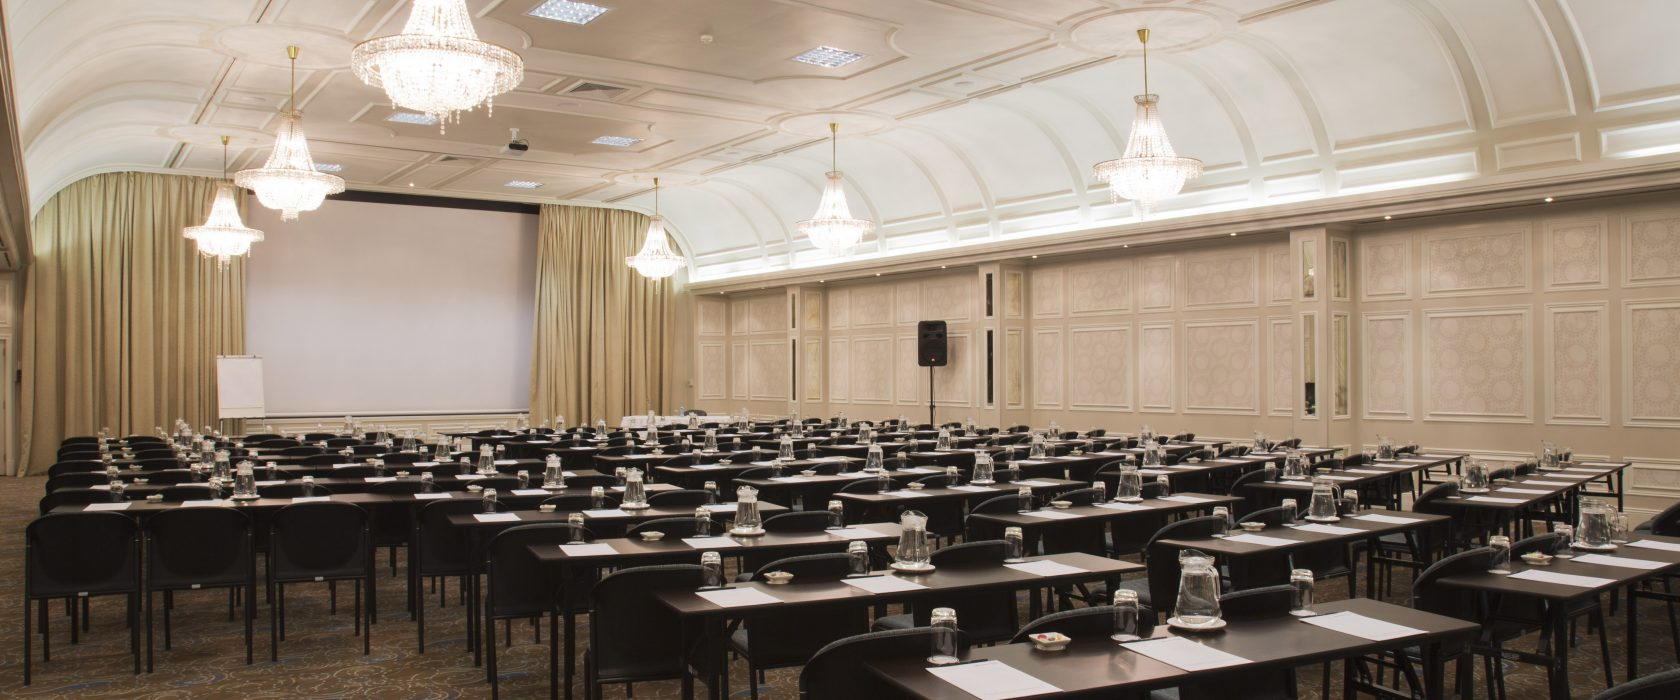 Meeting Rooms For Hire Johannesburg